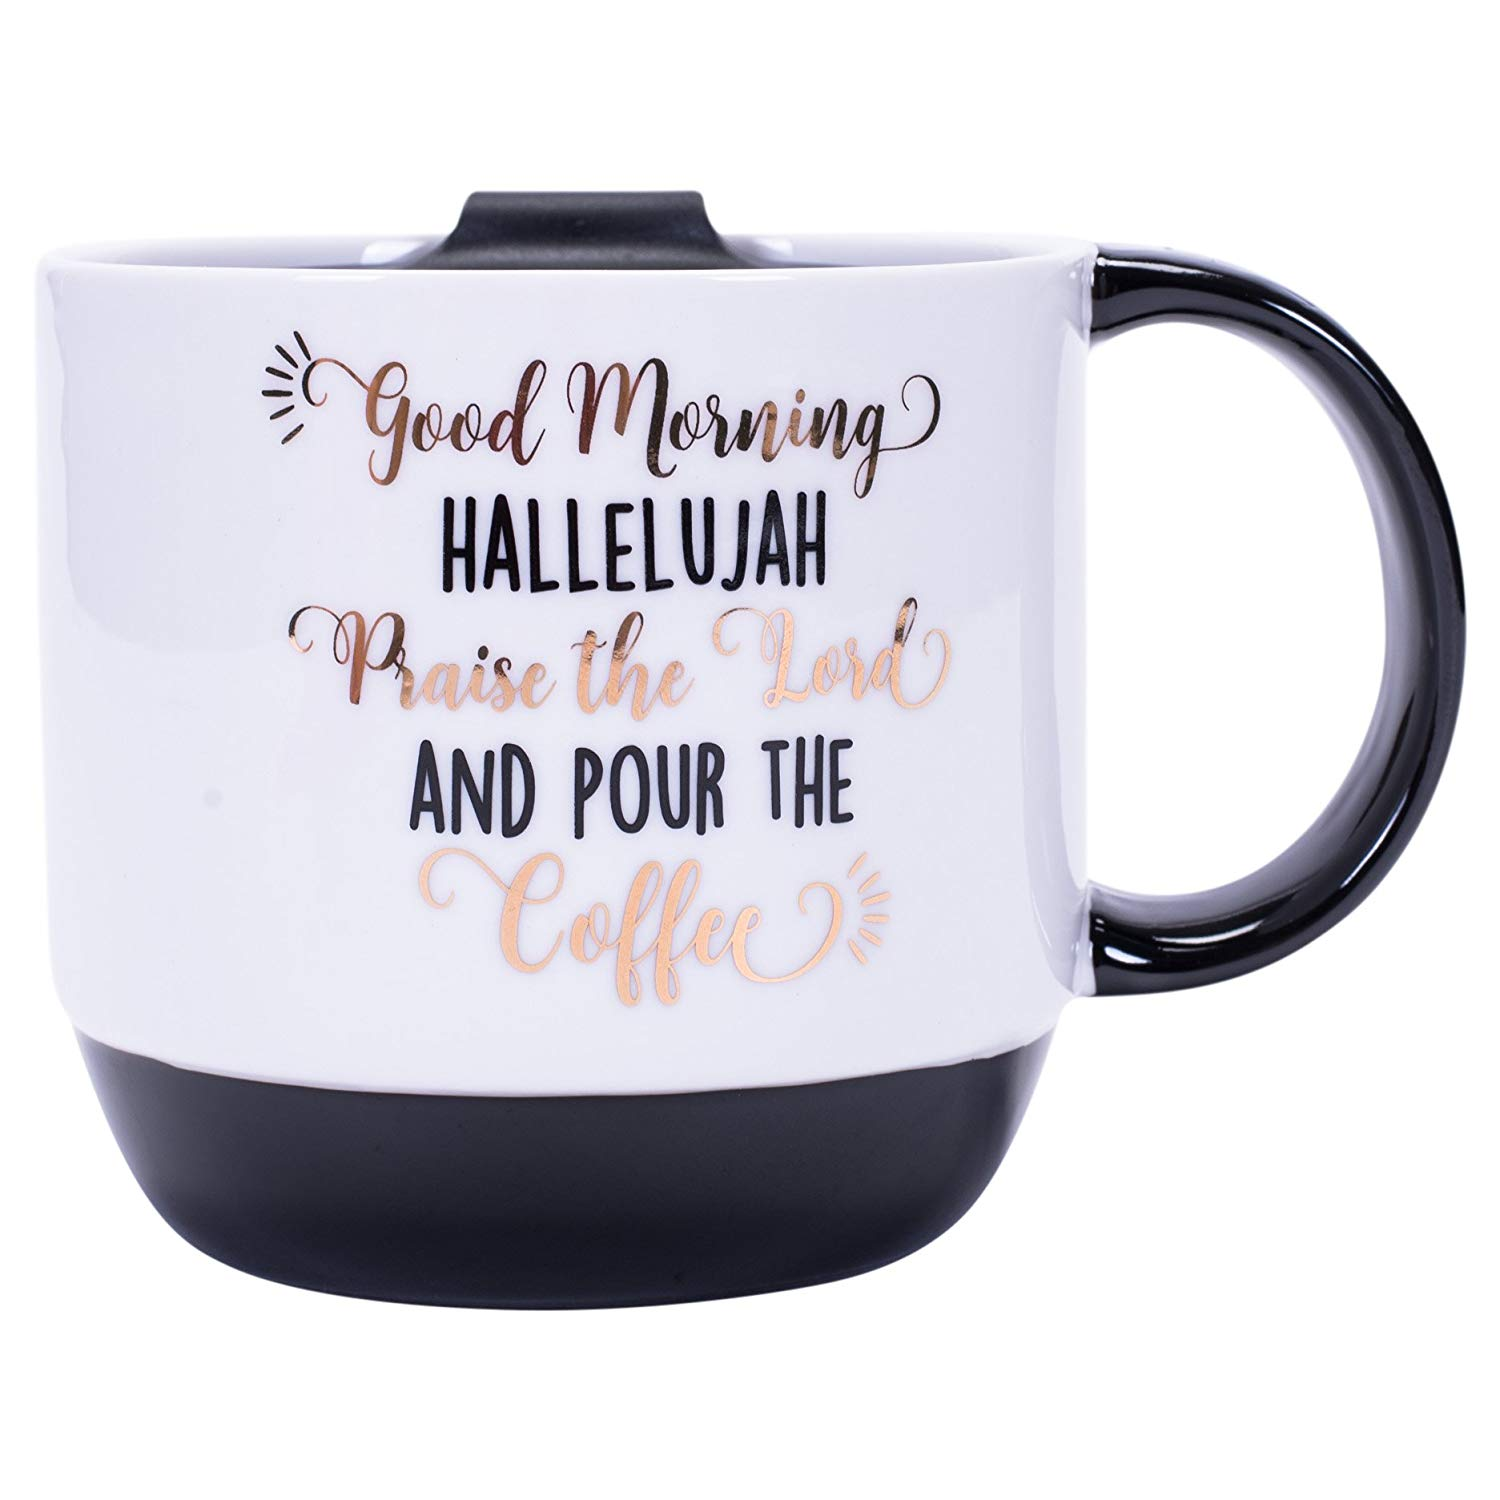 Good Morning Hallelujah Praise Lord Pour Coffee